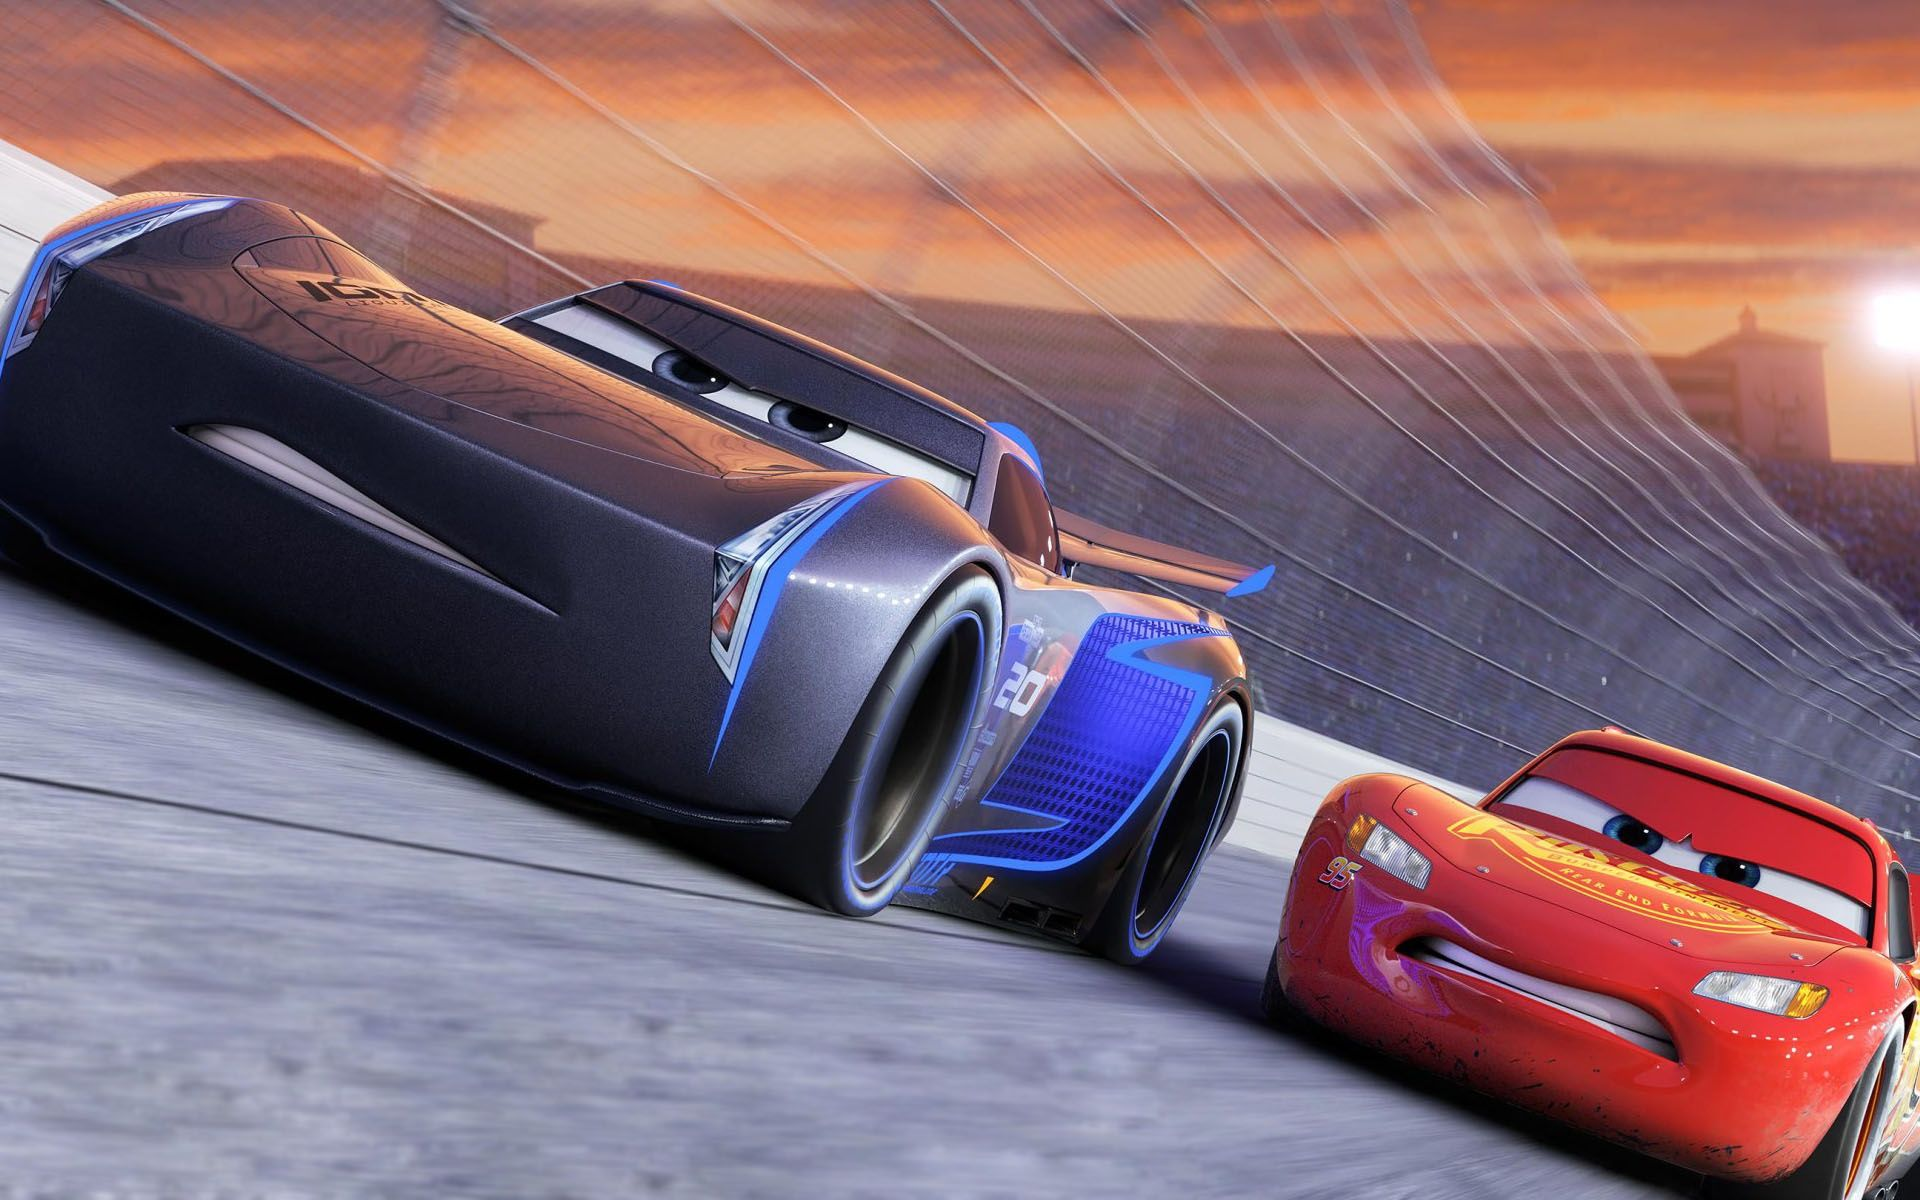 Cars 3 This Hd Cars 3 Wallpaper Is Based On Cars 3 N A It Released On N A And Starring Armie Hammer Owen W Carros Da Disney Carros De Cinema Carros 3 Filme